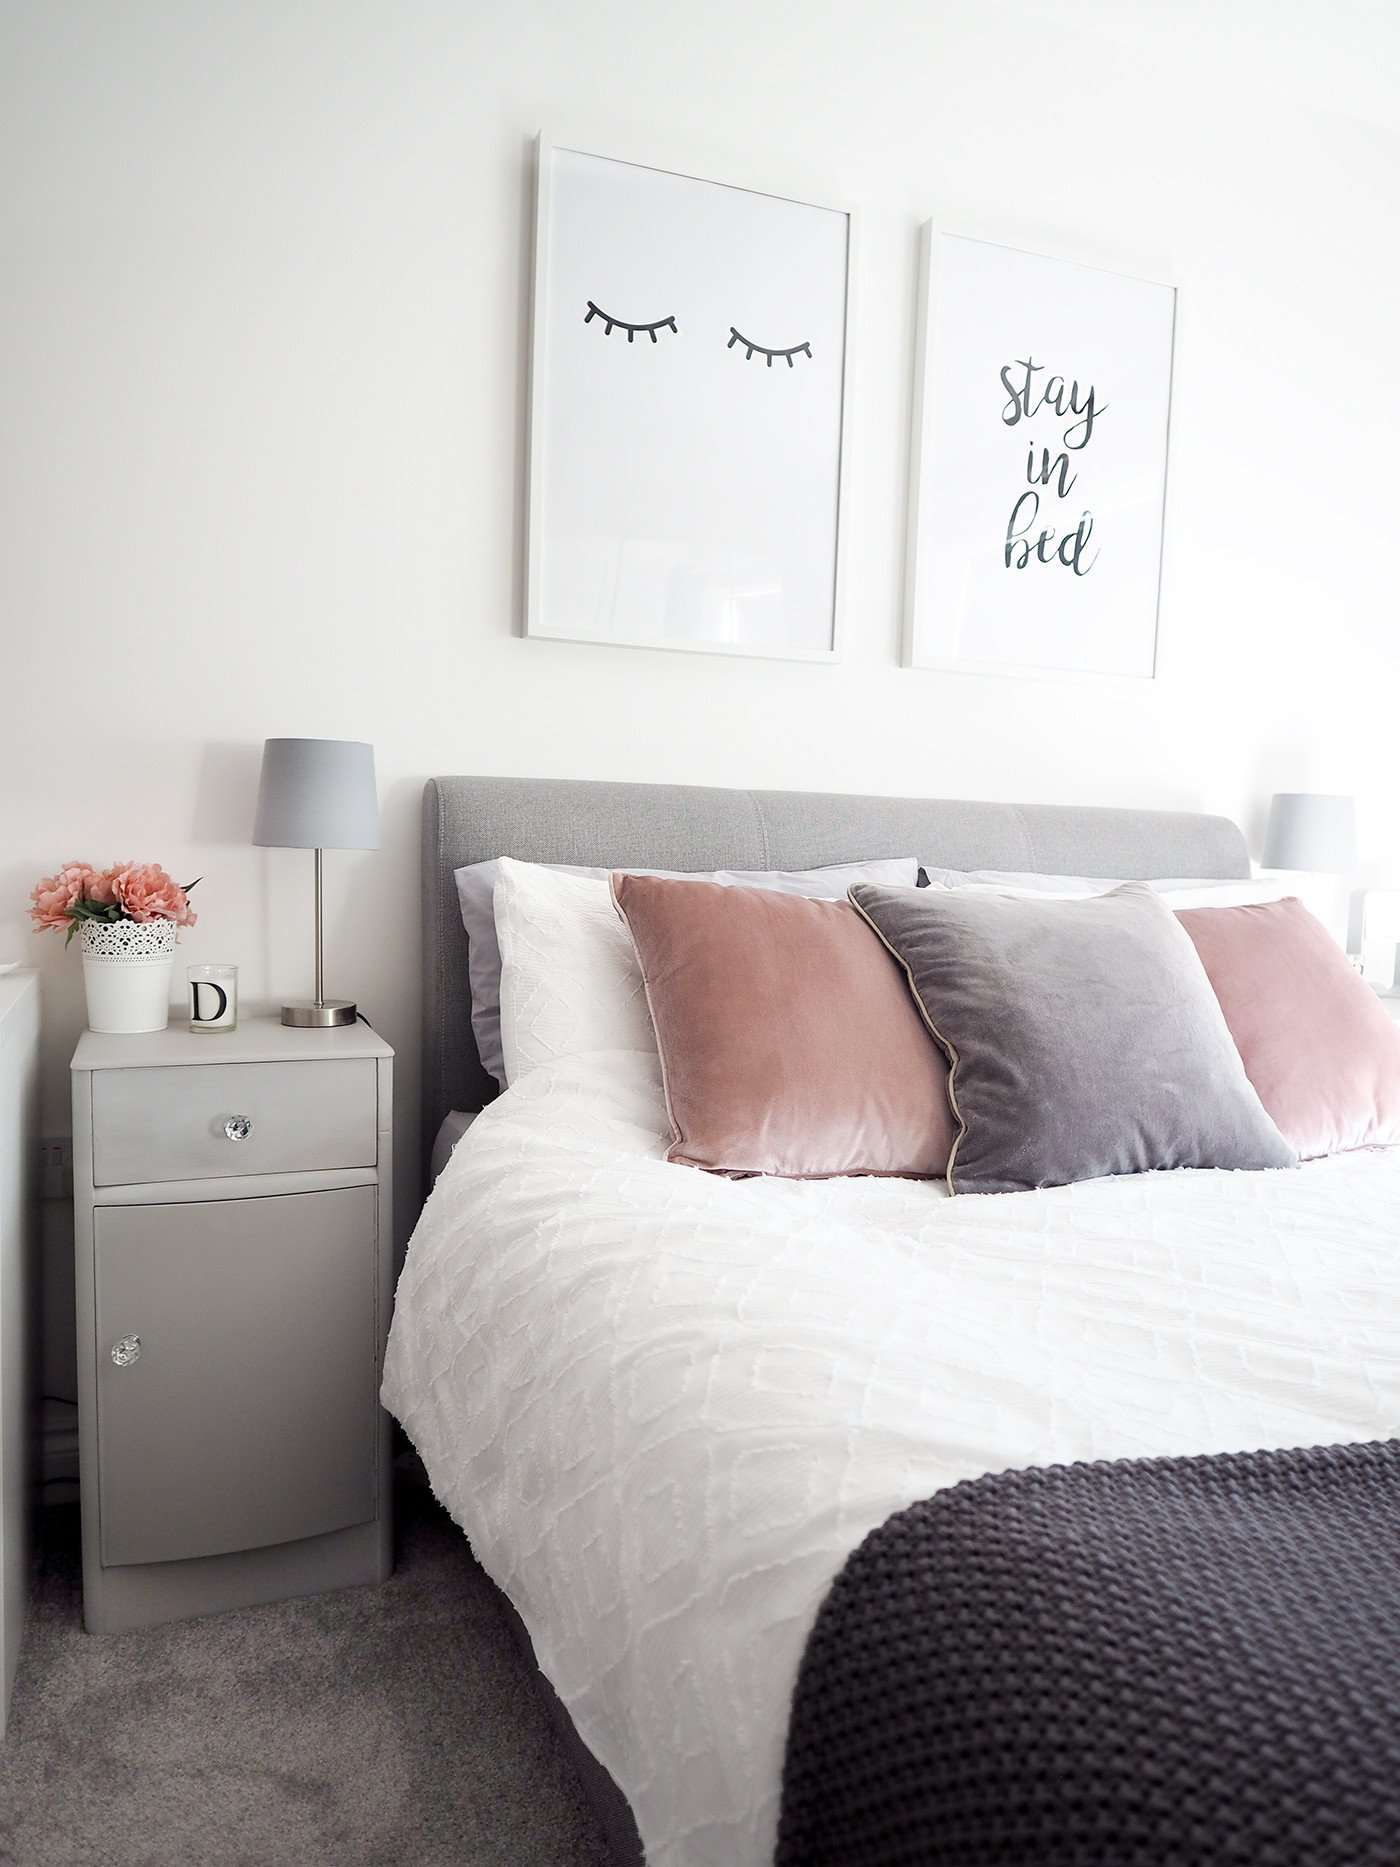 Pink and Gray Room Decor Inspirational Bedroom tour